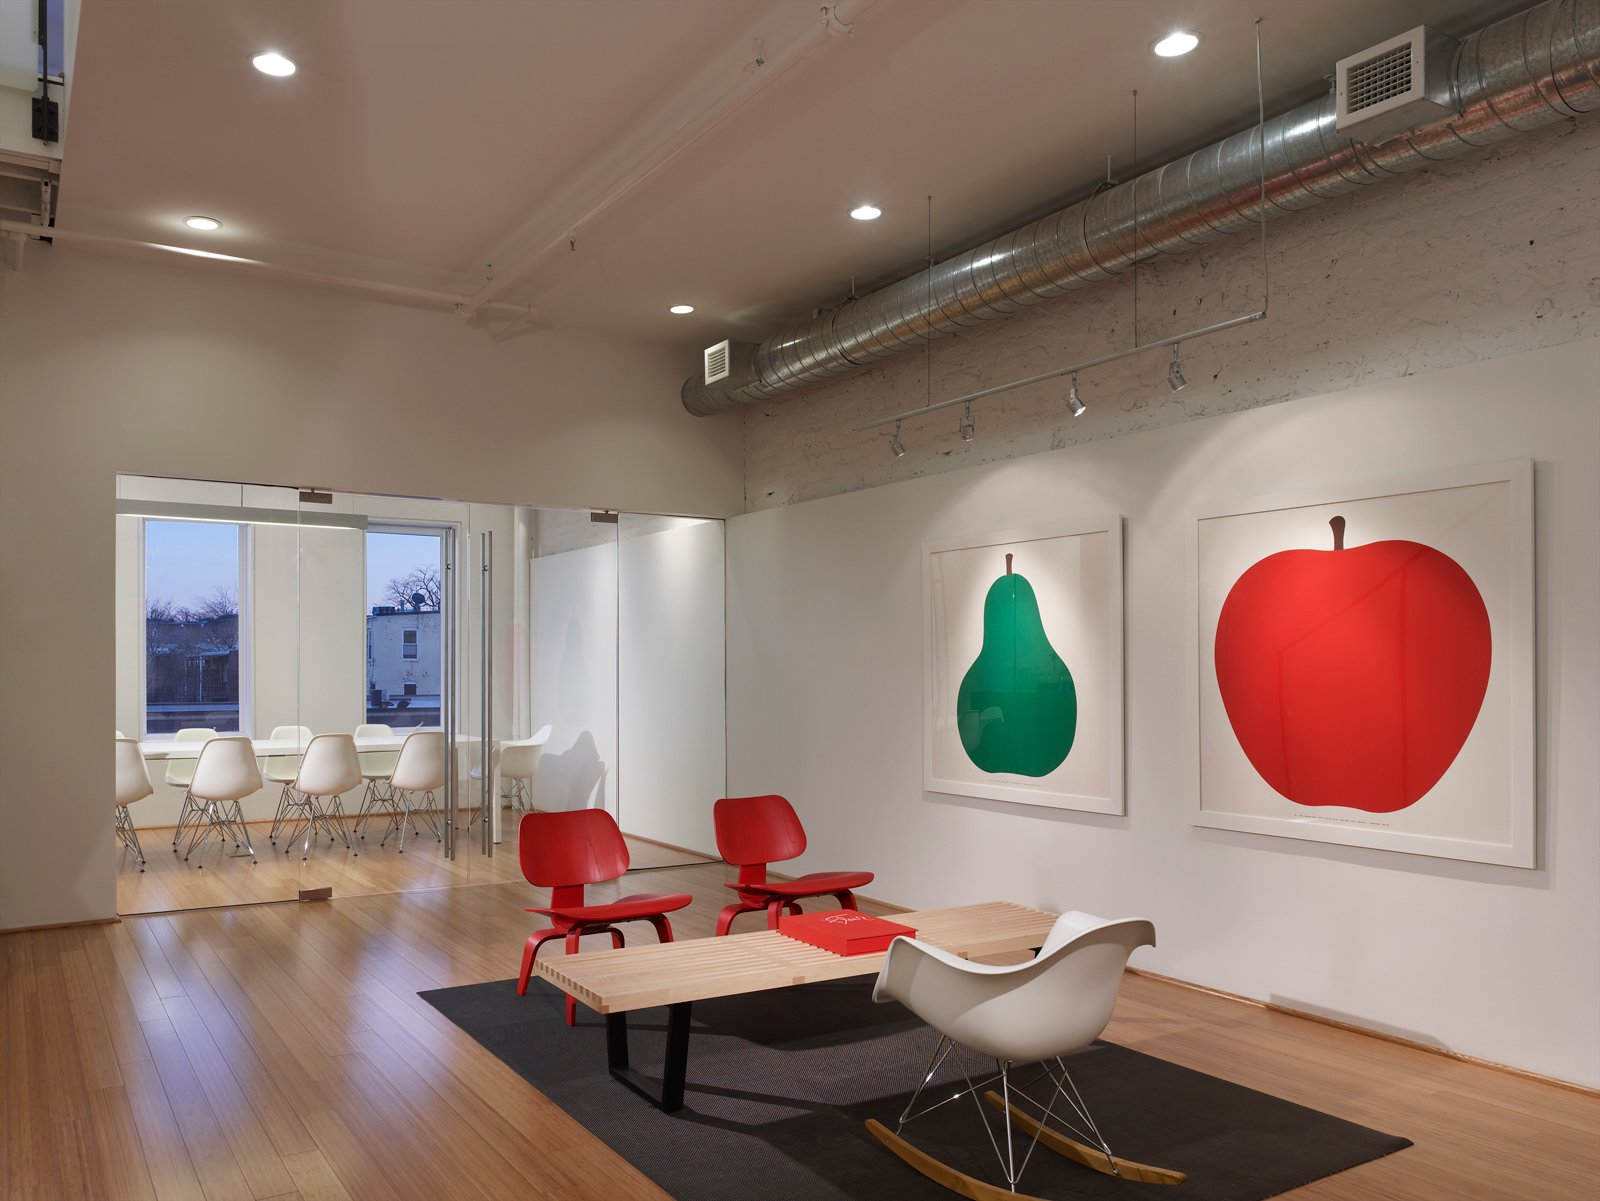 """Red, green, and white reduce the visual clutter of the office. The conference room gets plenty of natural light and the wall, coated with Idea Paint (TM) is used for brainstorming project ideas. """"We get a lot of natural light. Light is really important to me, personally. I don't perform well when I'm in a dark, enclosed space. We wanted to keep it really clean because we deal with color all day long,"""" says Pum. Photo by: Anice Hoachlander of Hoachlander Davis Photography  Photo 4 of 9 in Design Army, Washington, D.C."""